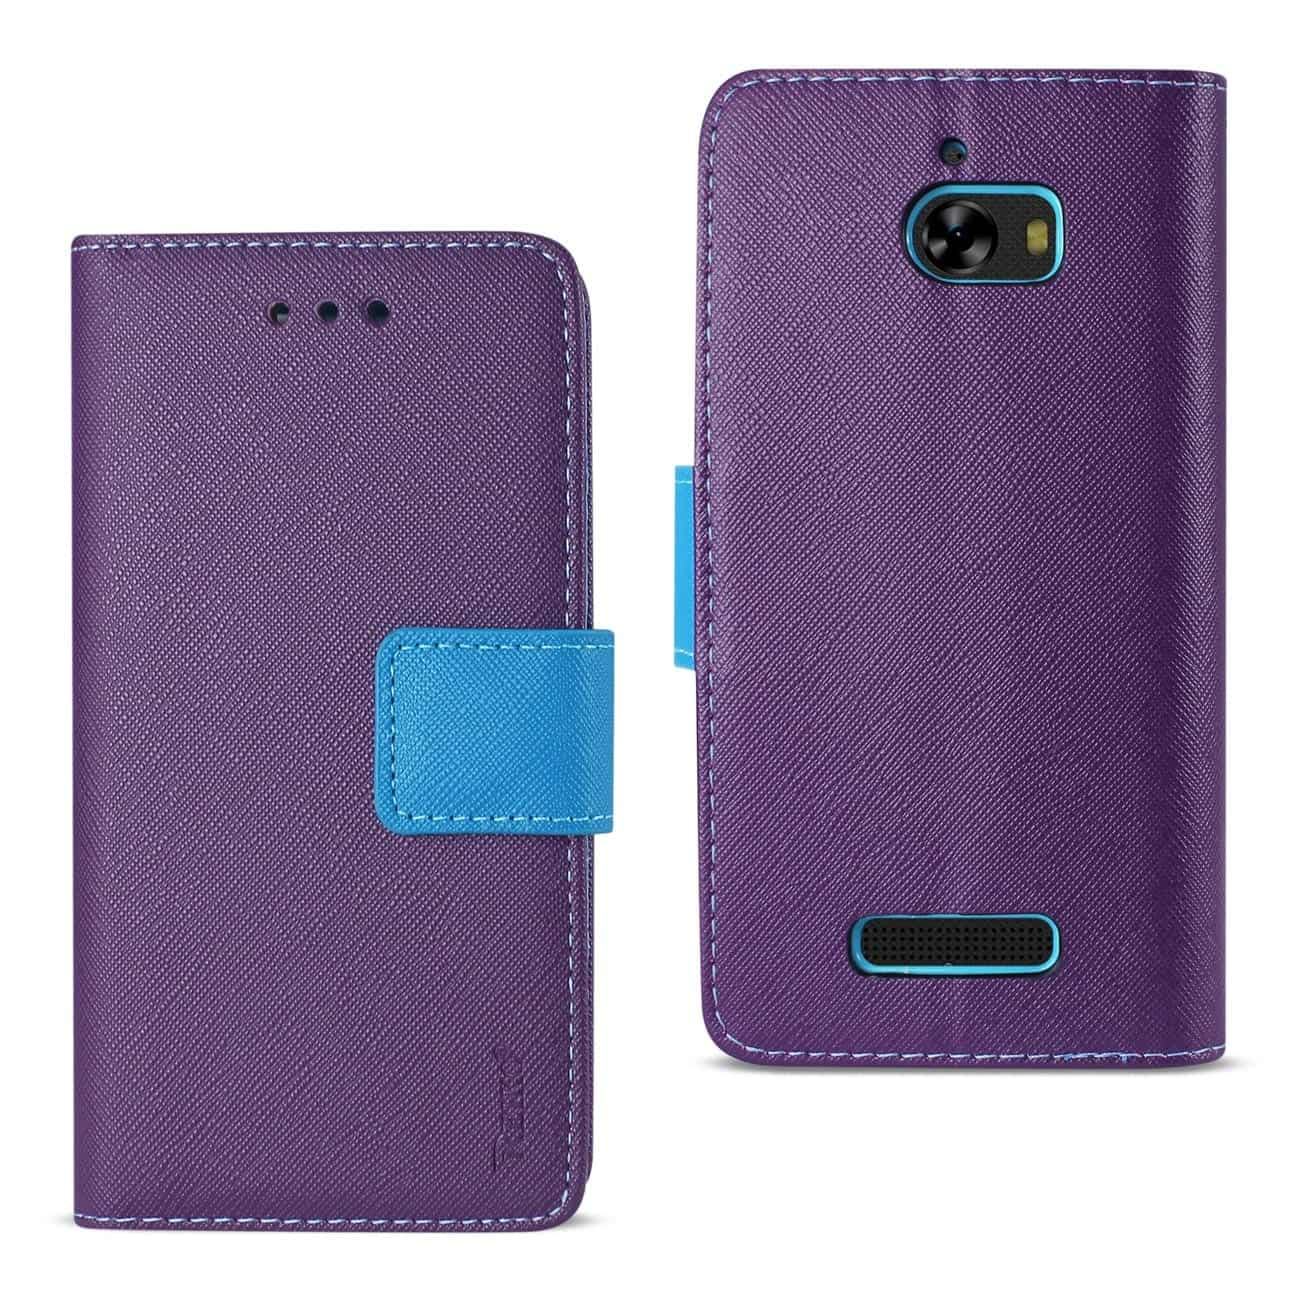 COOLPAD DEFIANT 3-IN-1 WALLET CASE IN PURPLE